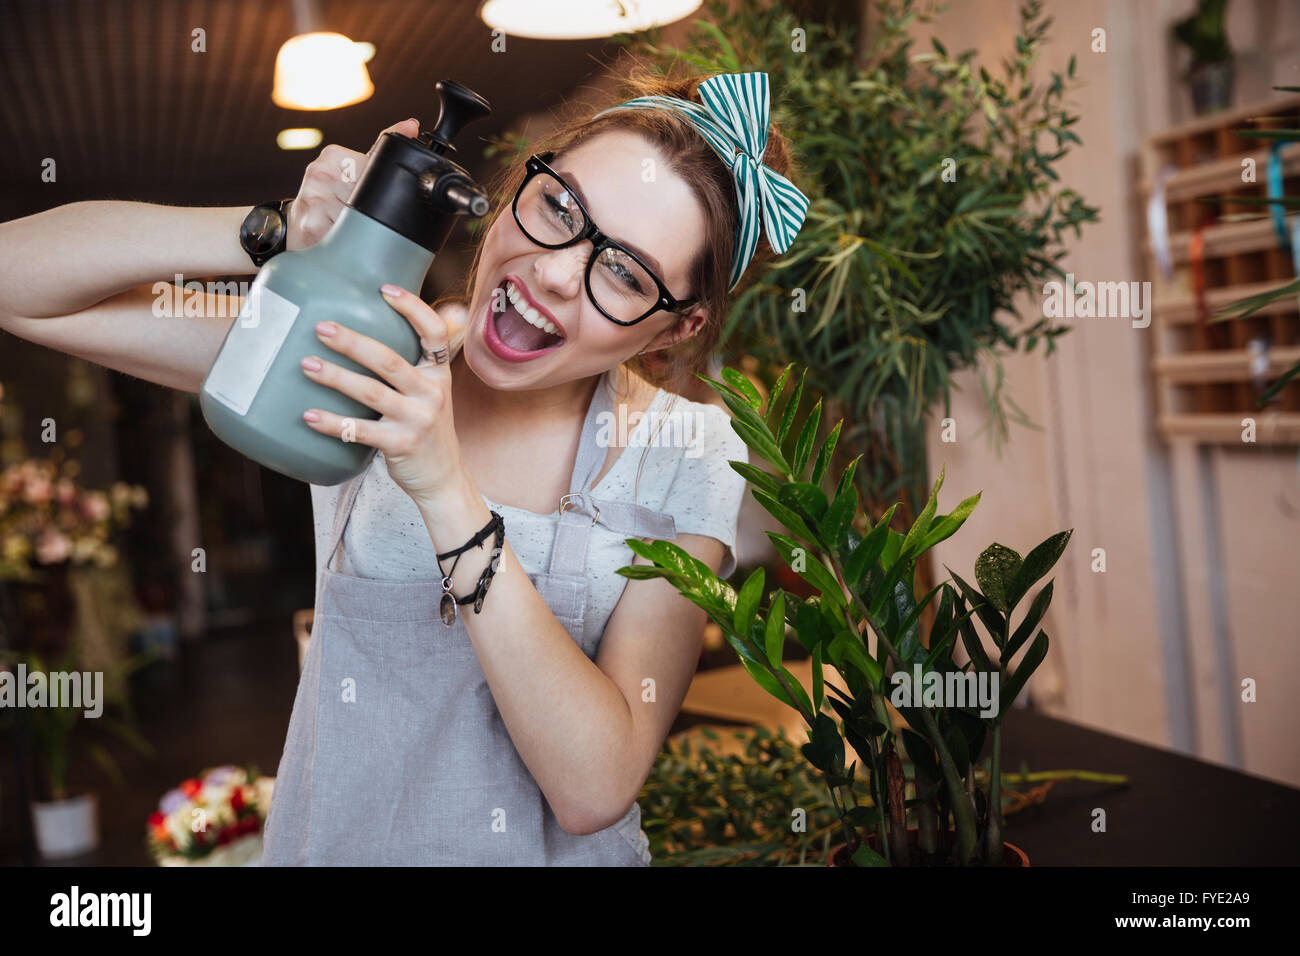 Amusing young woman florist with water sprayer watering flowers and shouting - Stock Image